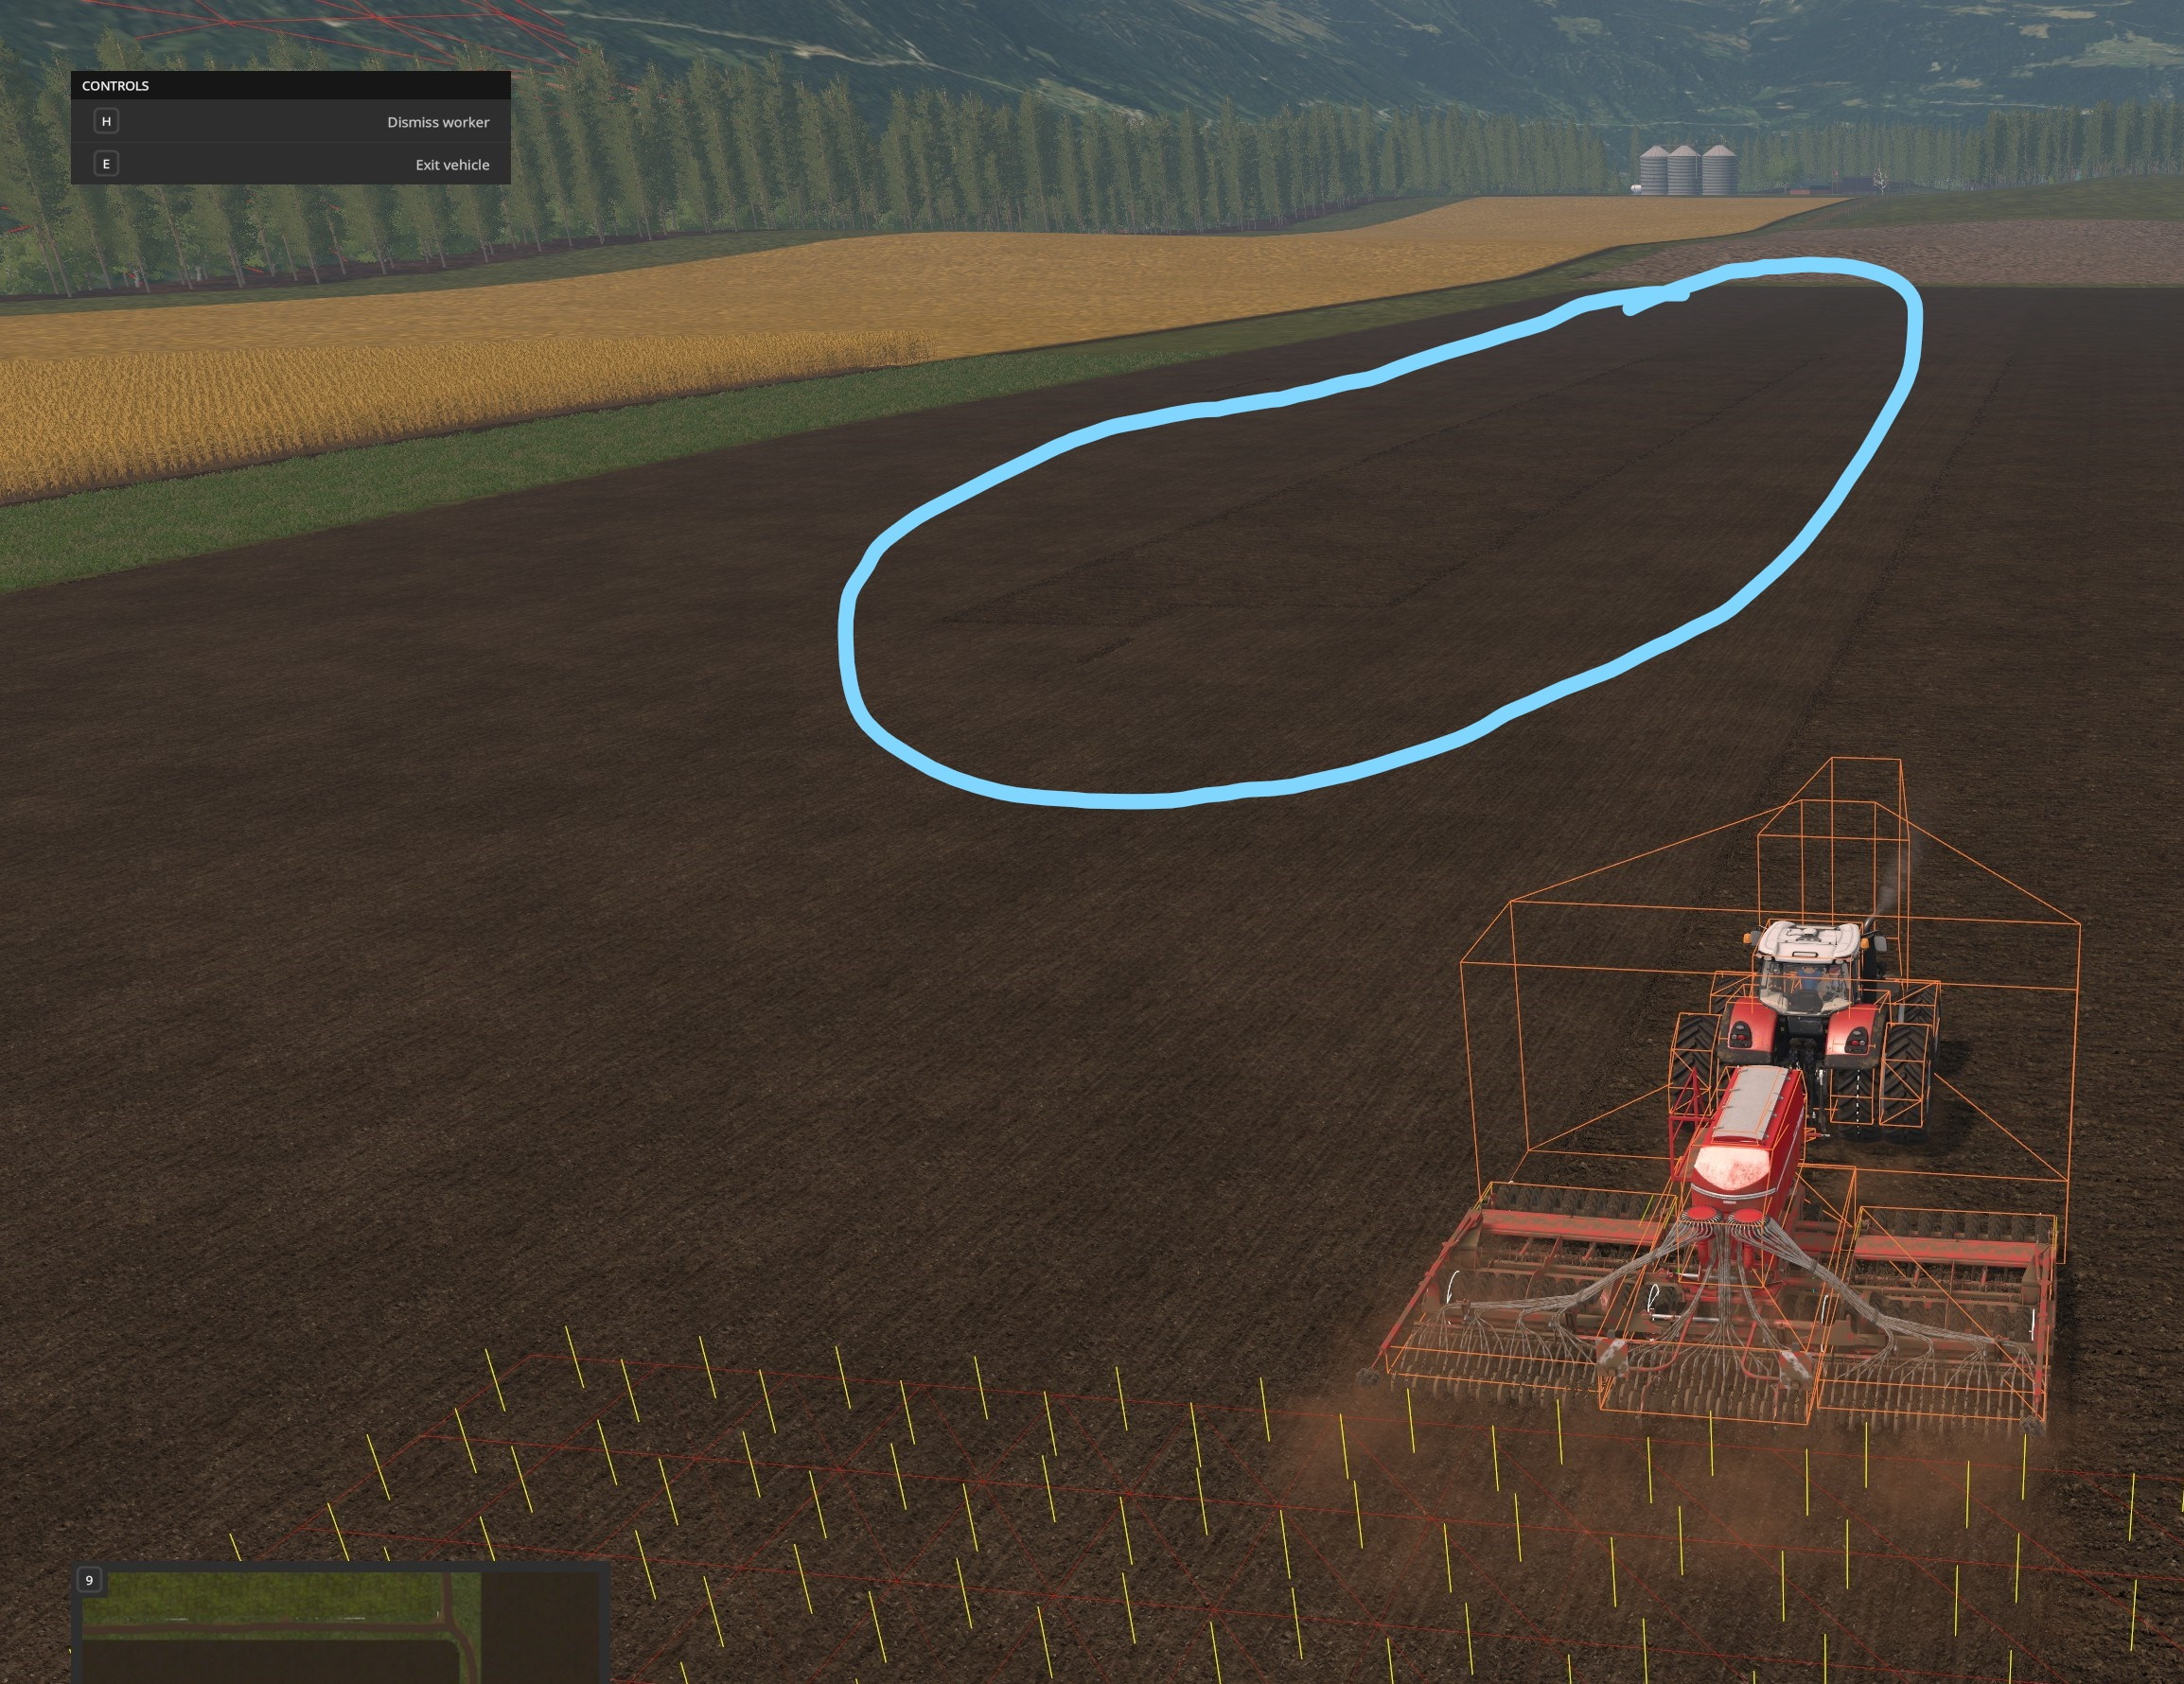 The Helper AI doesn't much care for this section of Field 10